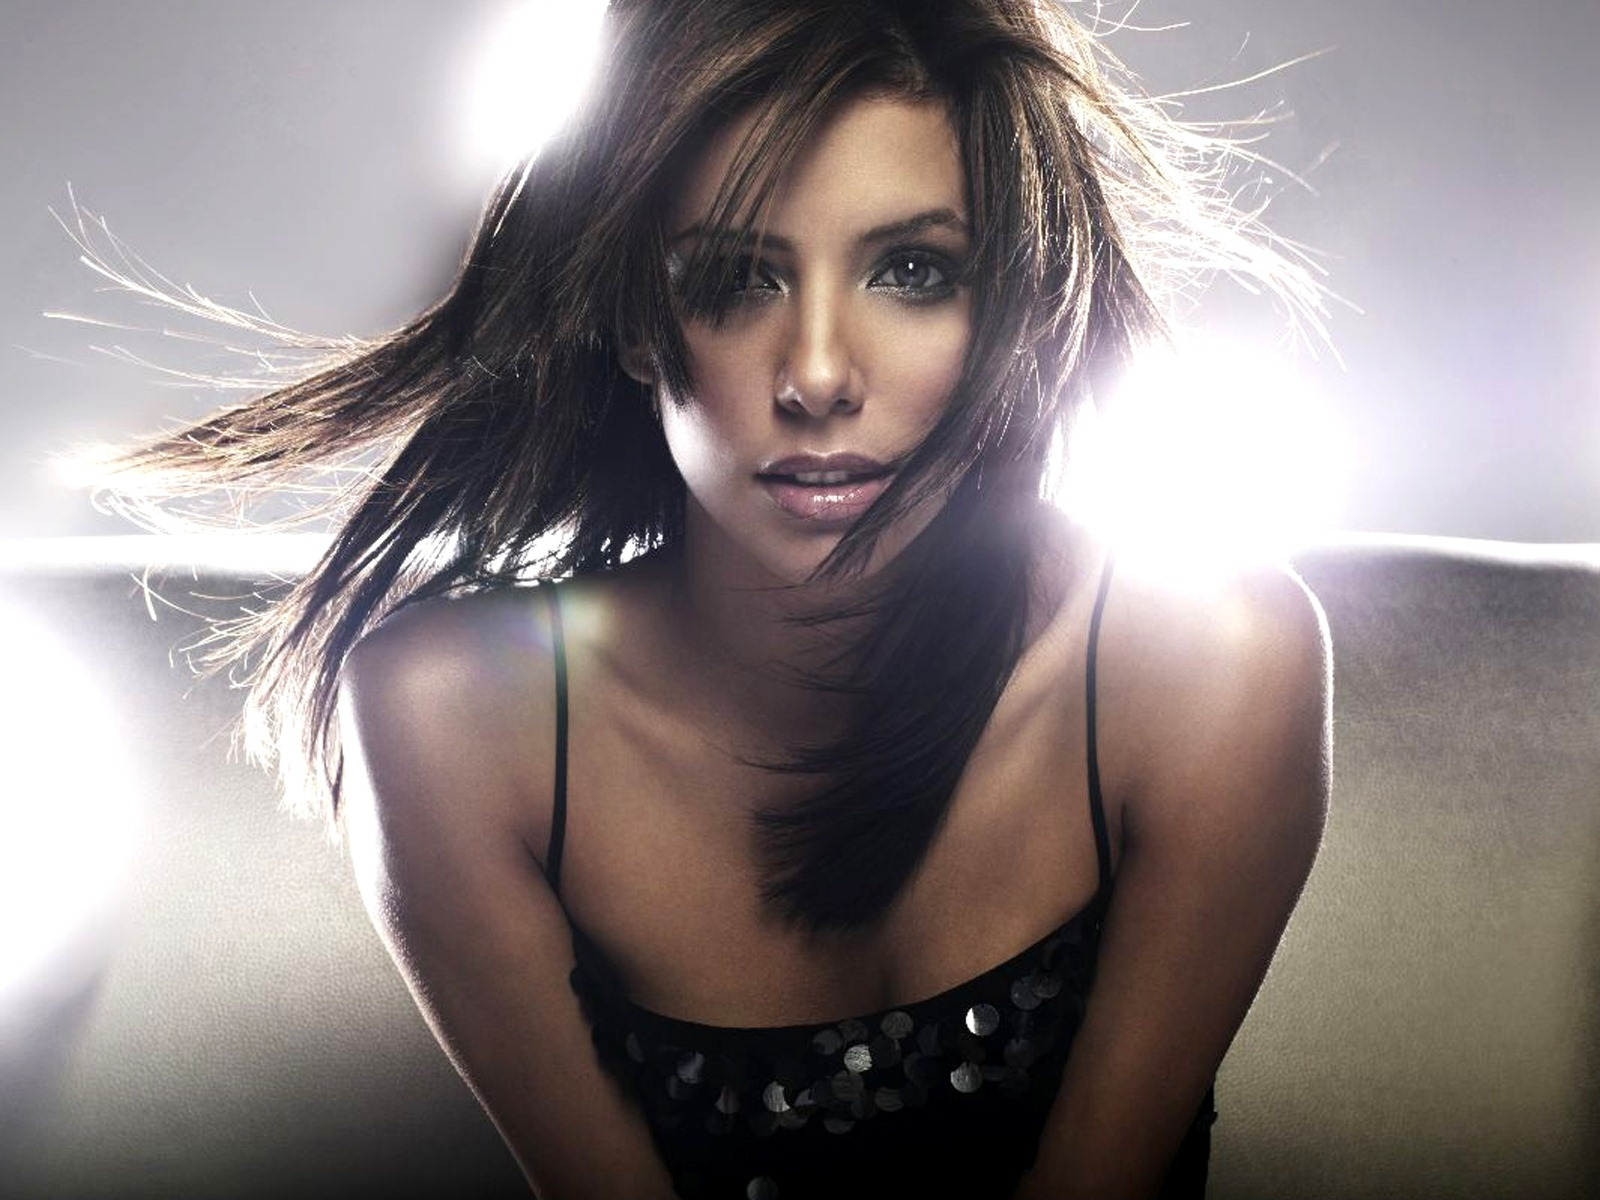 Eva Longoria, Eva Longoria hot, American hot actress, American, American actress, Eva Longoria sexy, American model, top model, sexy model, American girls, sexy American, hot actress, unseen, Eva Longoria bikini, hot model bikini. Hot actress, world hot actress, hot models, hot girls, sexy actress, Beautiful American, Top Actress